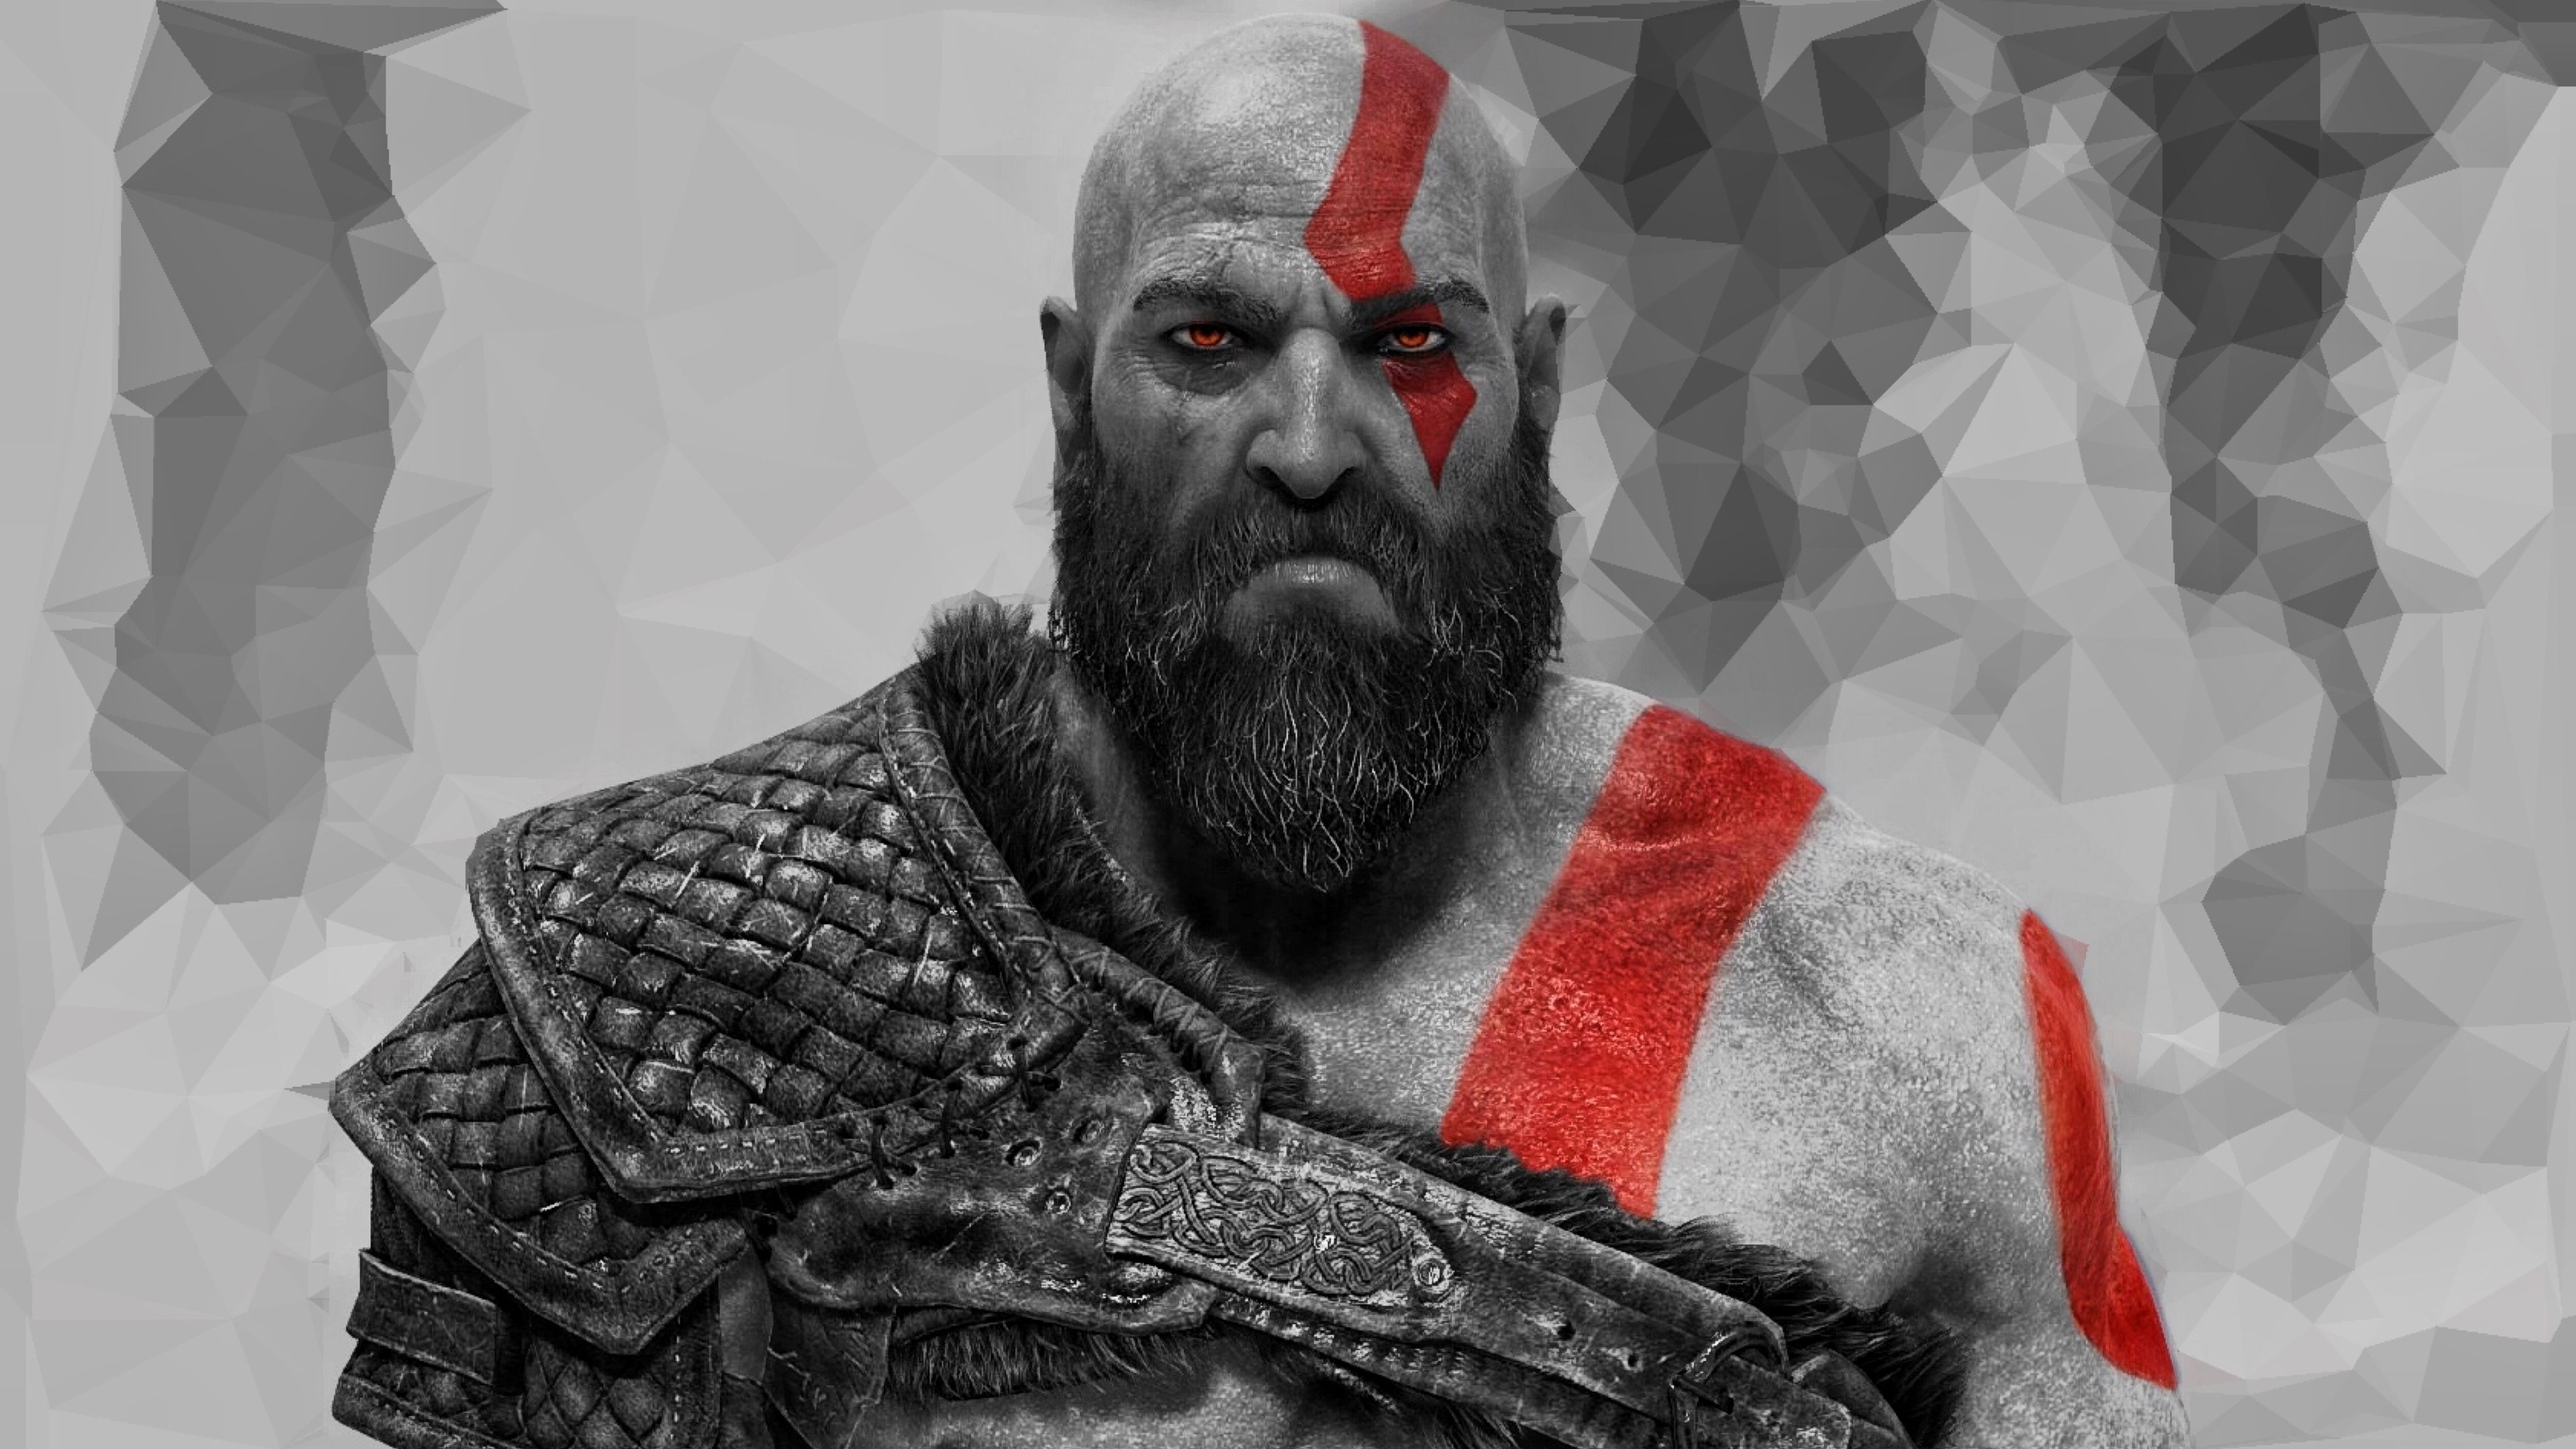 The Ghost God Of War 4k Hd Wallpapers God Of War Wallpapers Games Wallpapers 4k Wallpapers God Of War Kratos God Of War Hd Wallpaper